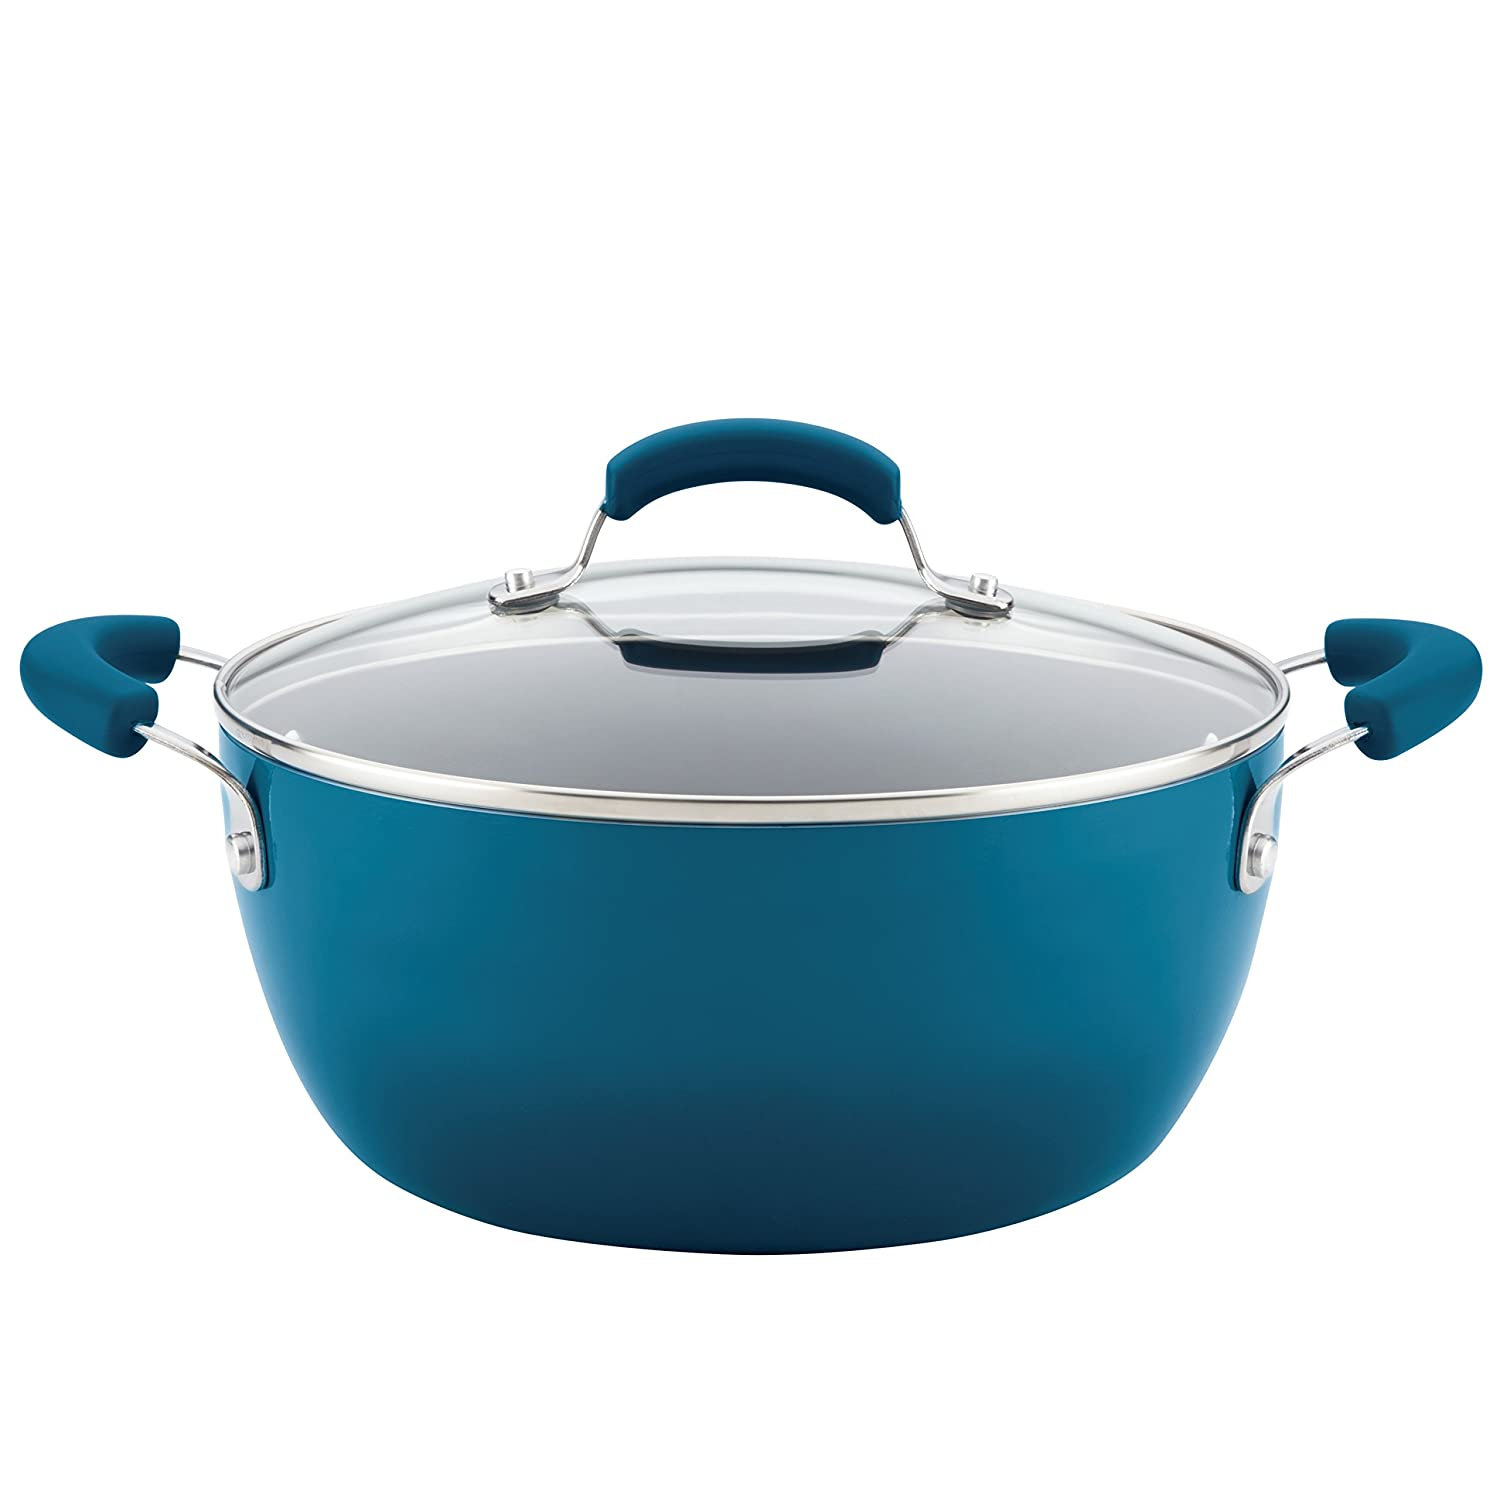 Rachael Ray Nonstick 5.5-Quart...